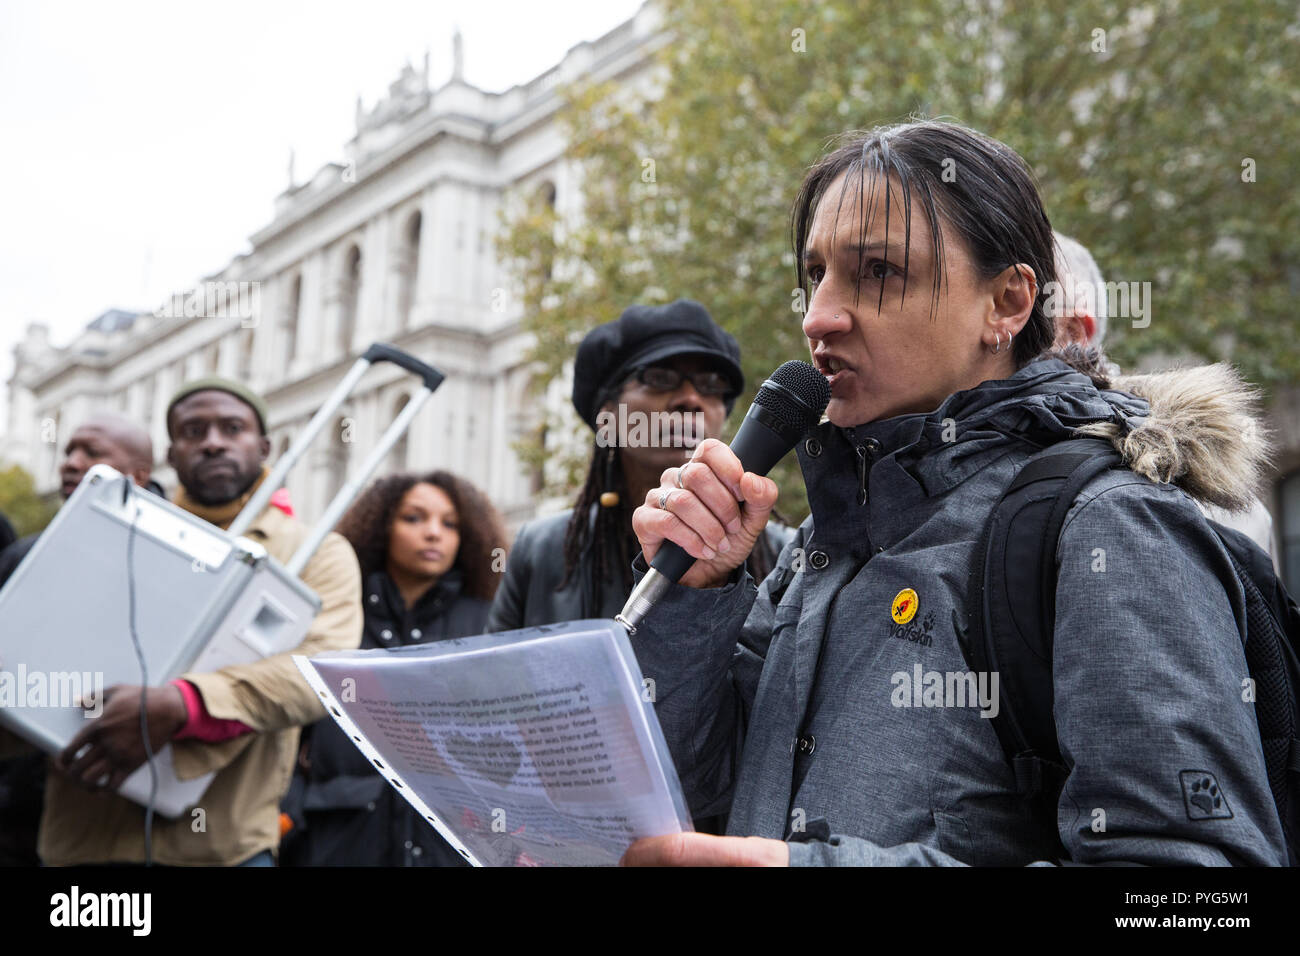 London, UK. 27th October, 2018. Becky Shah of the Hillsborough Justice Campaign, daughter of Inger Shah, addresses campaigners from the United Families and Friends Campaign (UFFC) taking part in the 20th annual procession to Downing Street in remembrance of family members and friends who died in police custody, prison, immigration detention or secure psychiatric hospitals. Inger Shah died in the Hillsborough disaster on 15th April 1989. Credit: Mark Kerrison/Alamy Live News - Stock Image